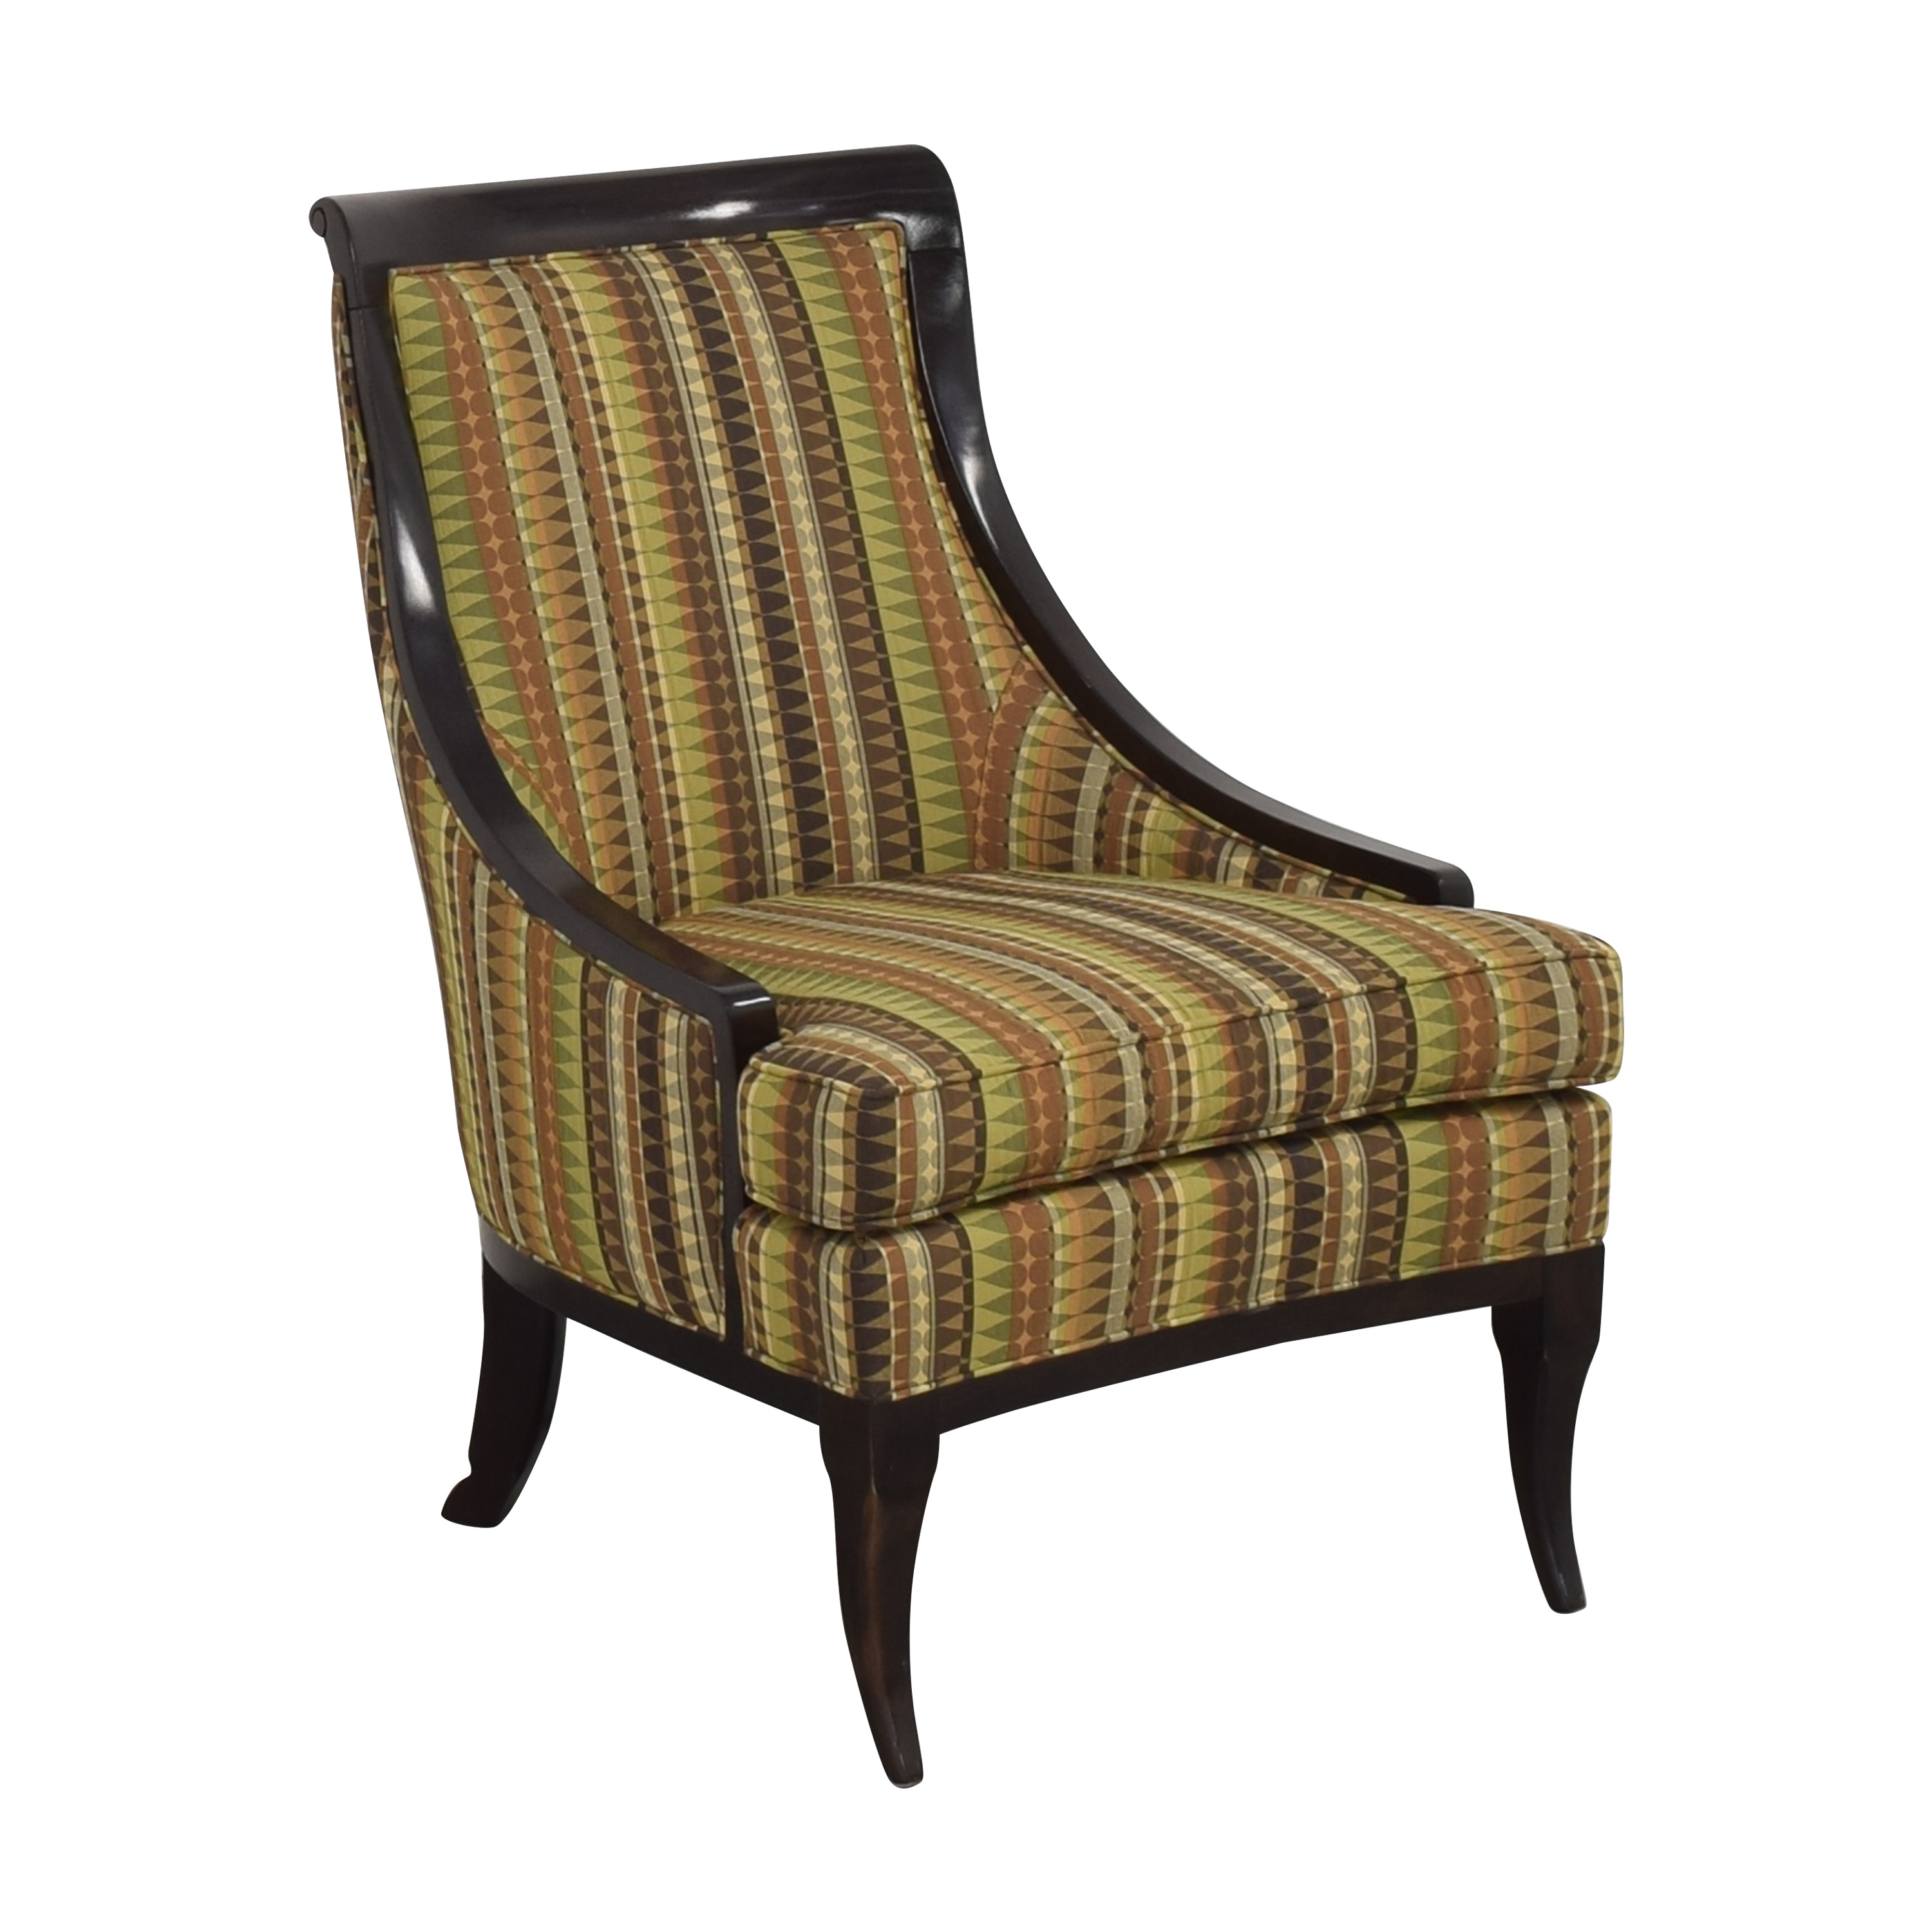 Century Furniture Century Furniture Upholstered Accent Chair second hand